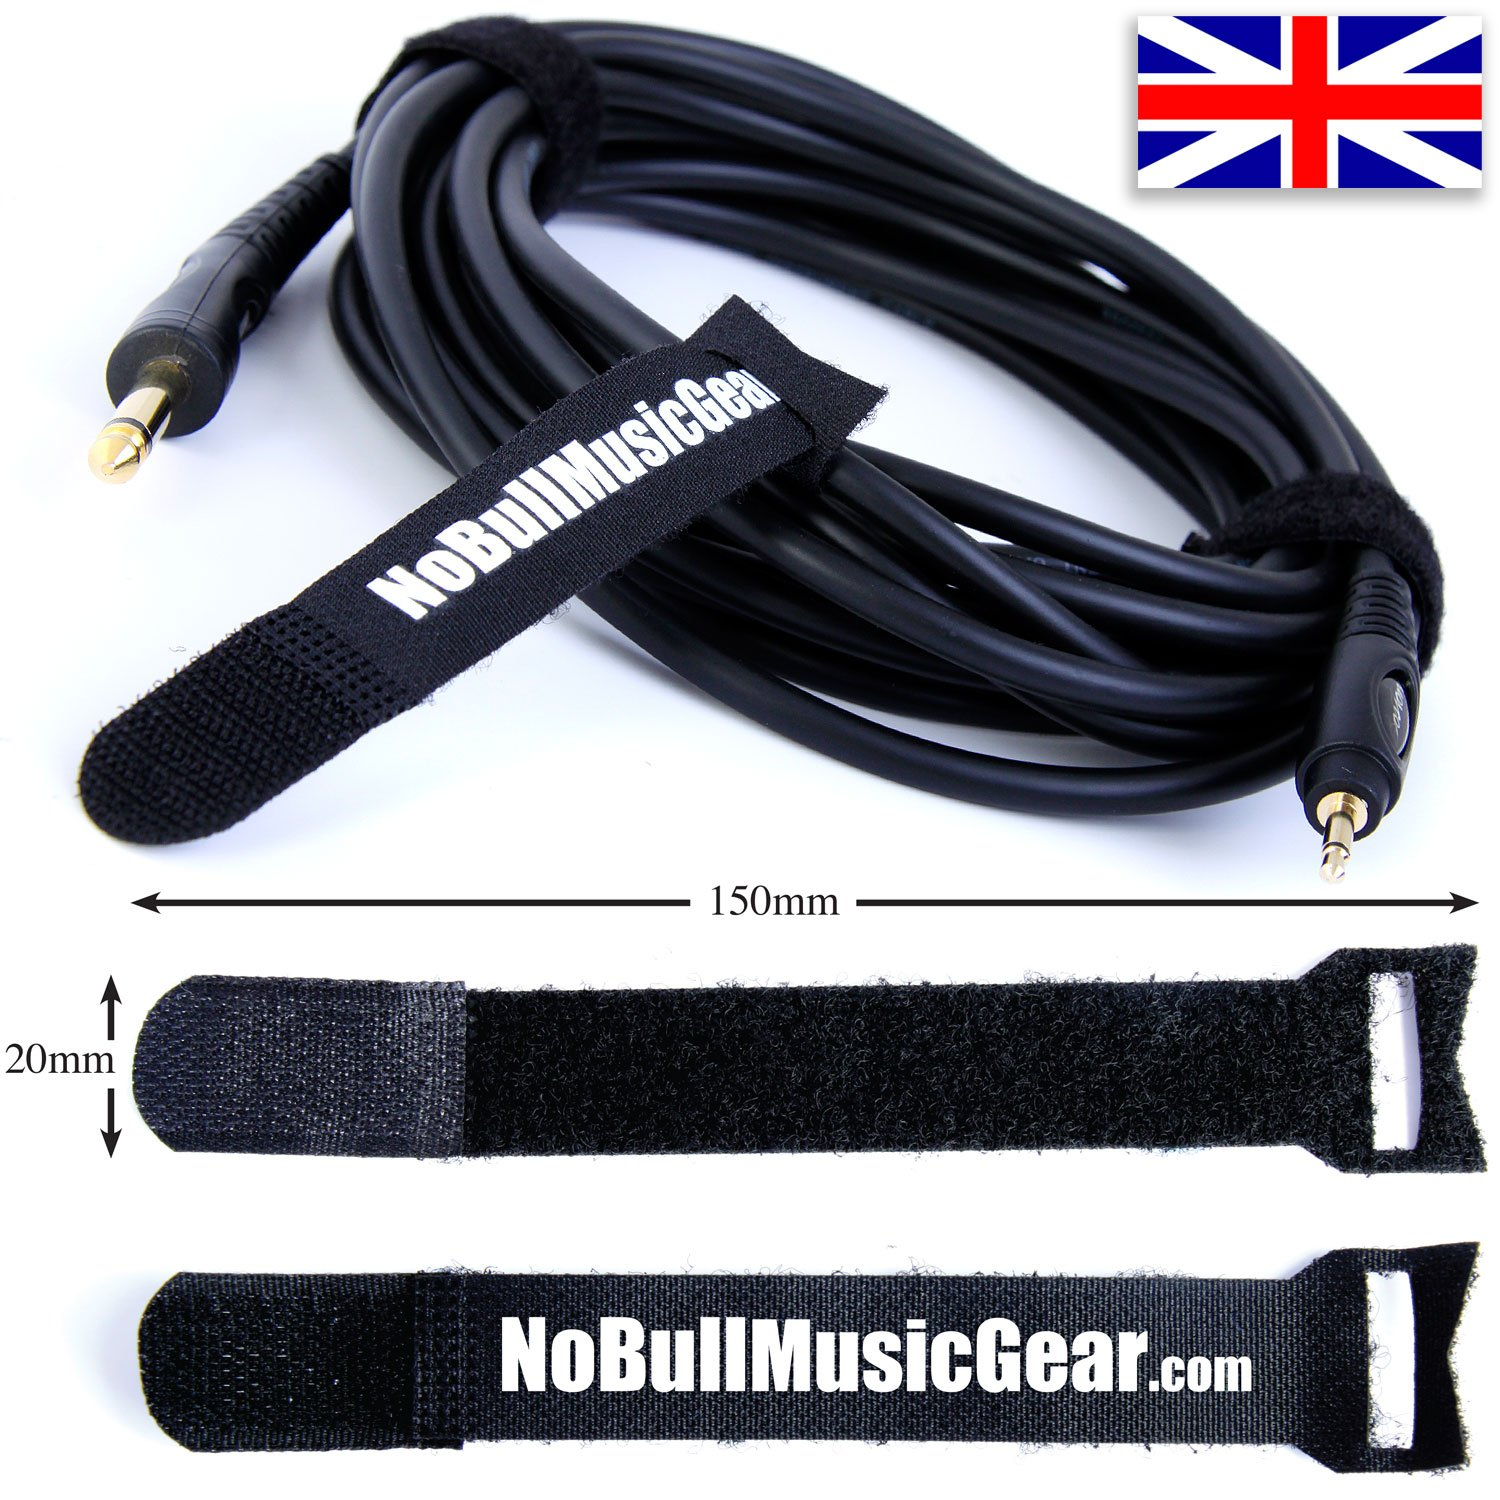 Cable Ties/Straps: Re-usable & Adjustable Hook & Loop Cable Tidy No Bull Music Gear